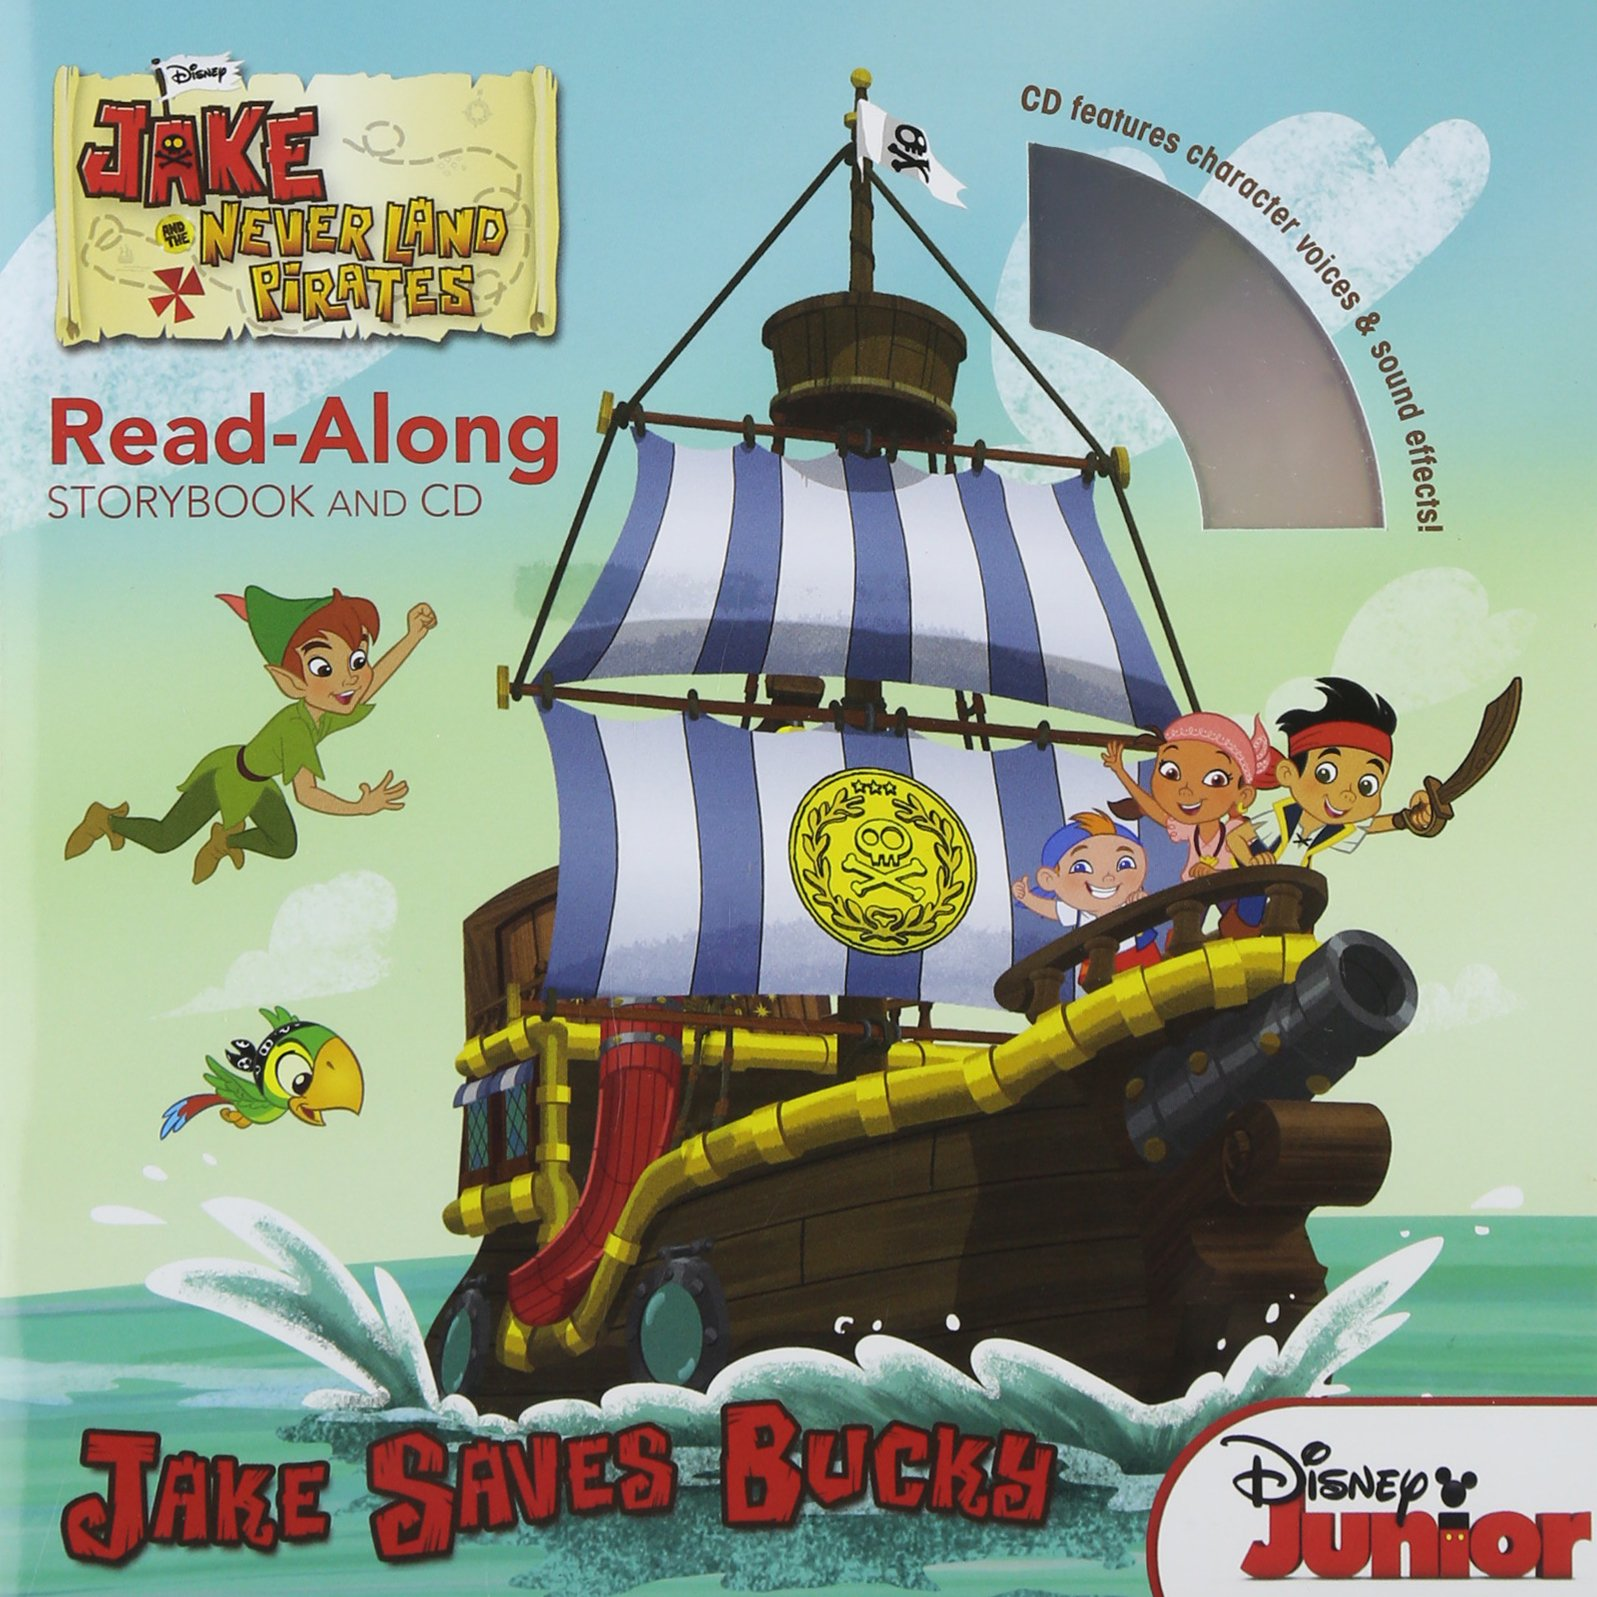 Jake and the Never Land Pirates Read-Along Storybook and CD: Jake Saves Bucky ebook